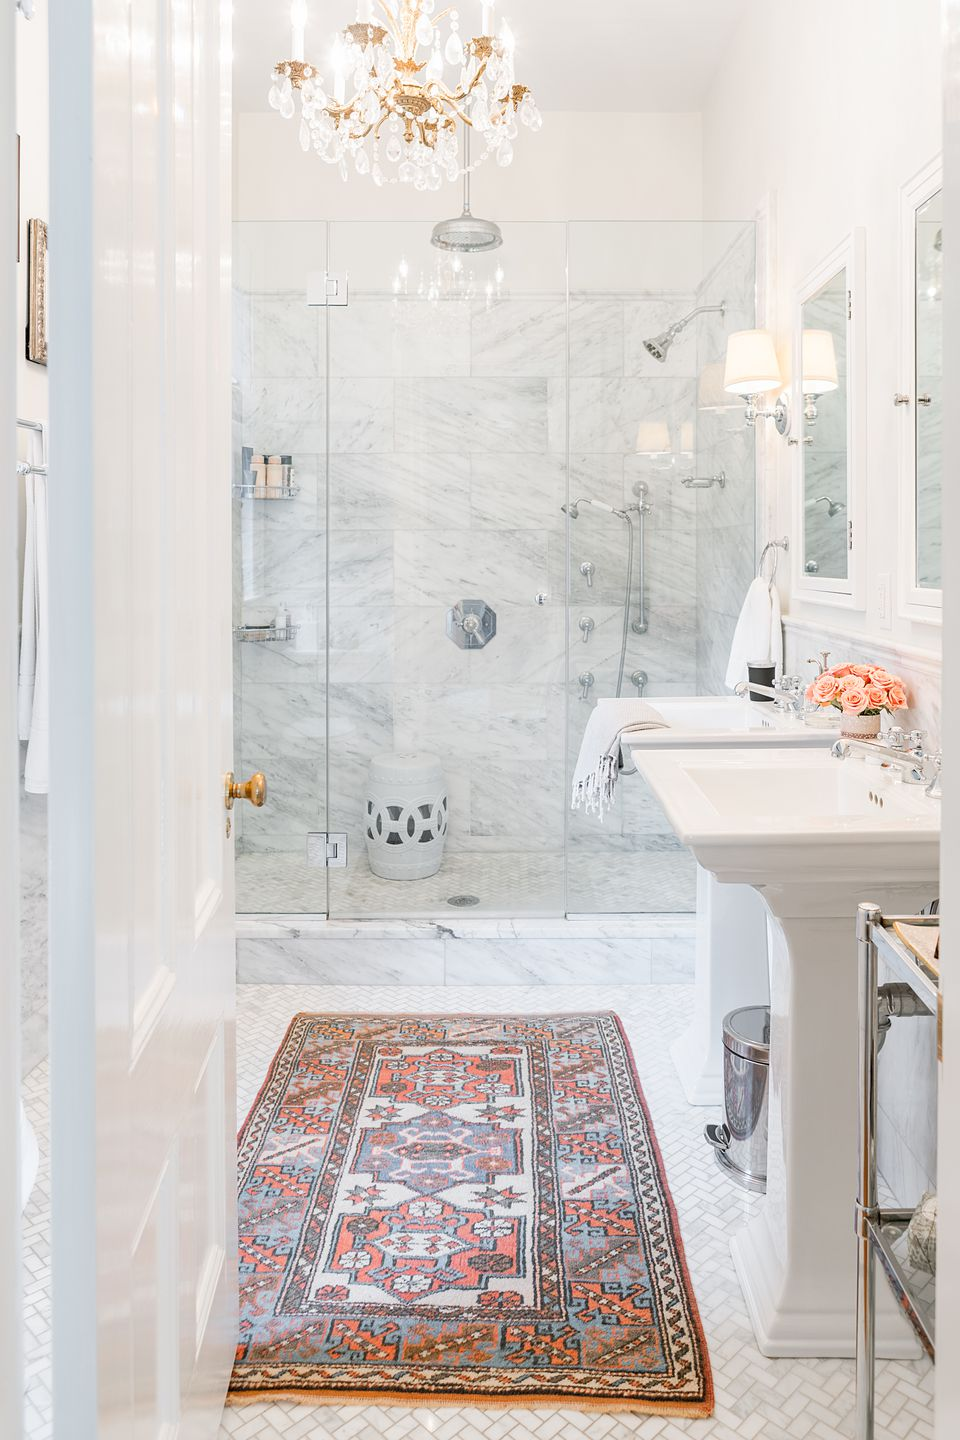 The vintage rug in the master bath is from the used-furnishings site Chairish.